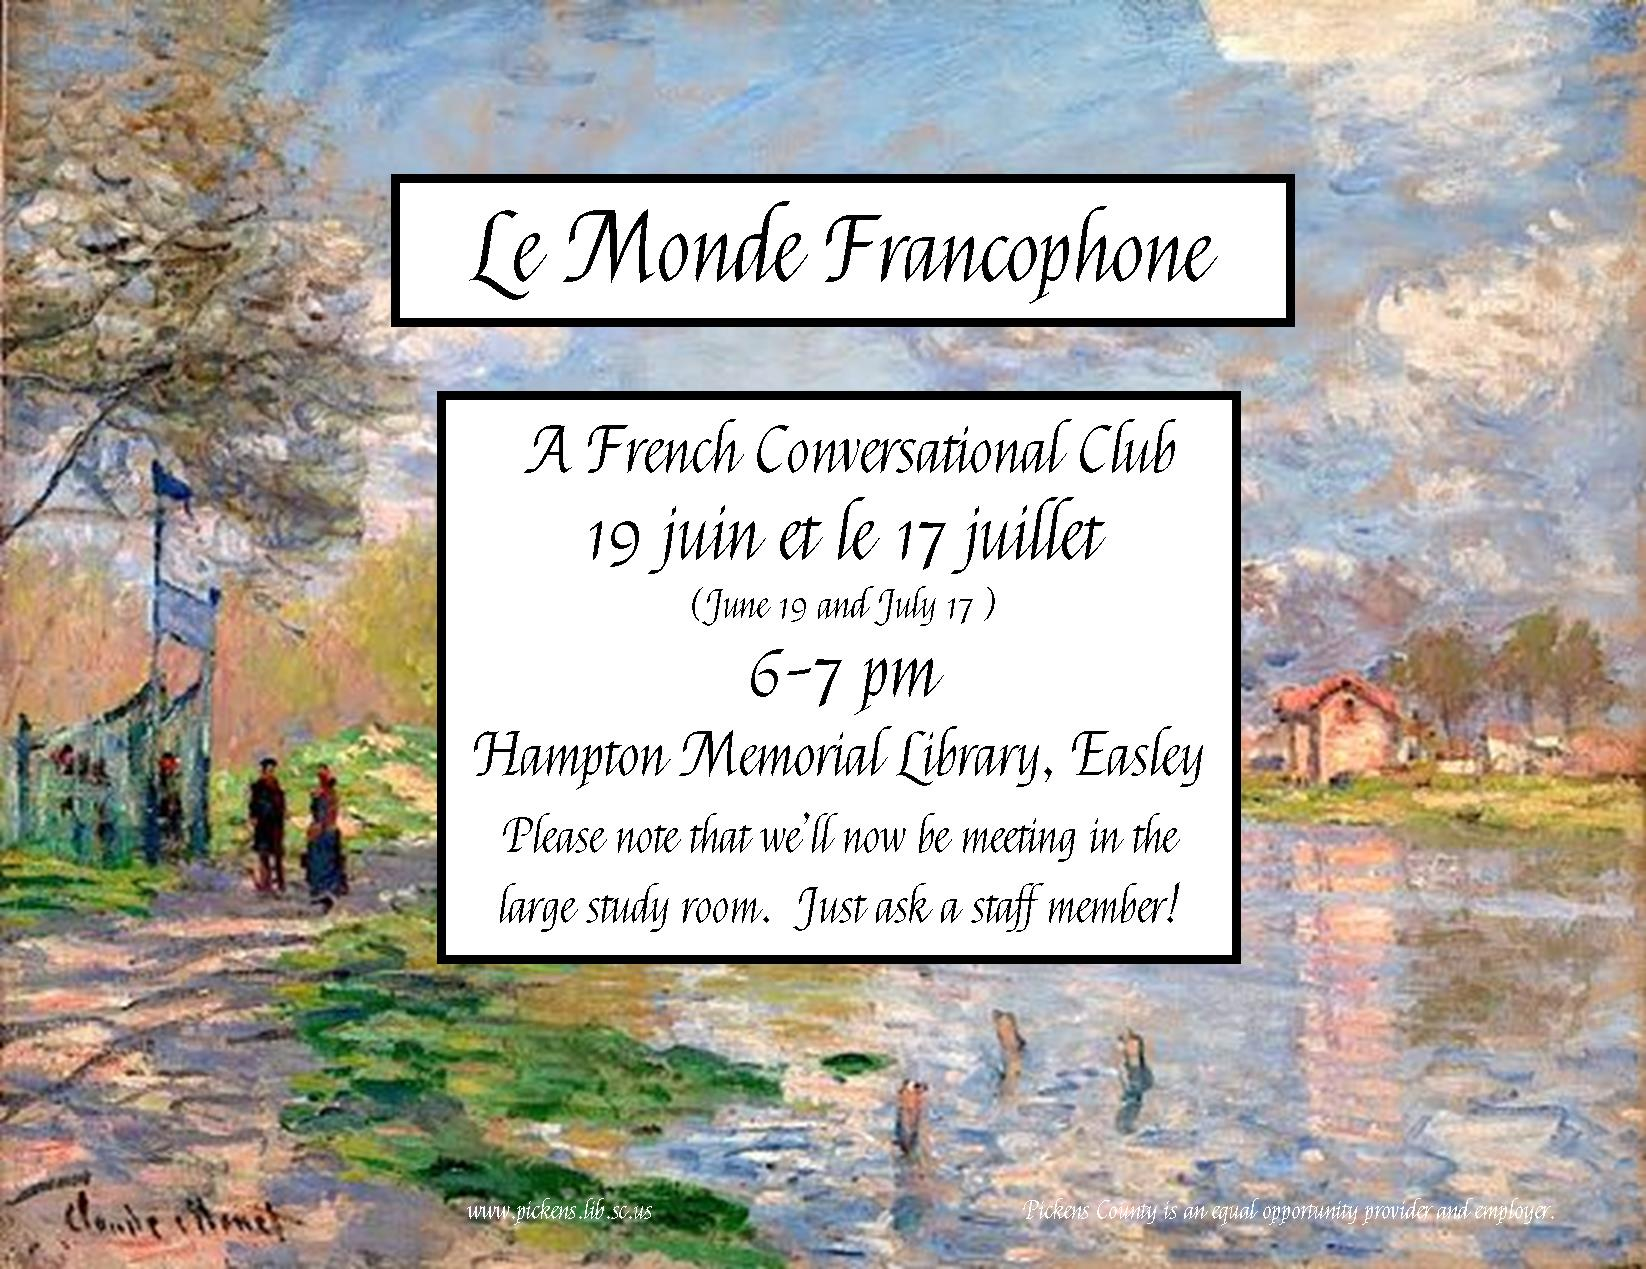 Le Monde Francophone: A French Conversational Club @ Your Library! @ Hampton Memorial Library | Easley | South Carolina | United States